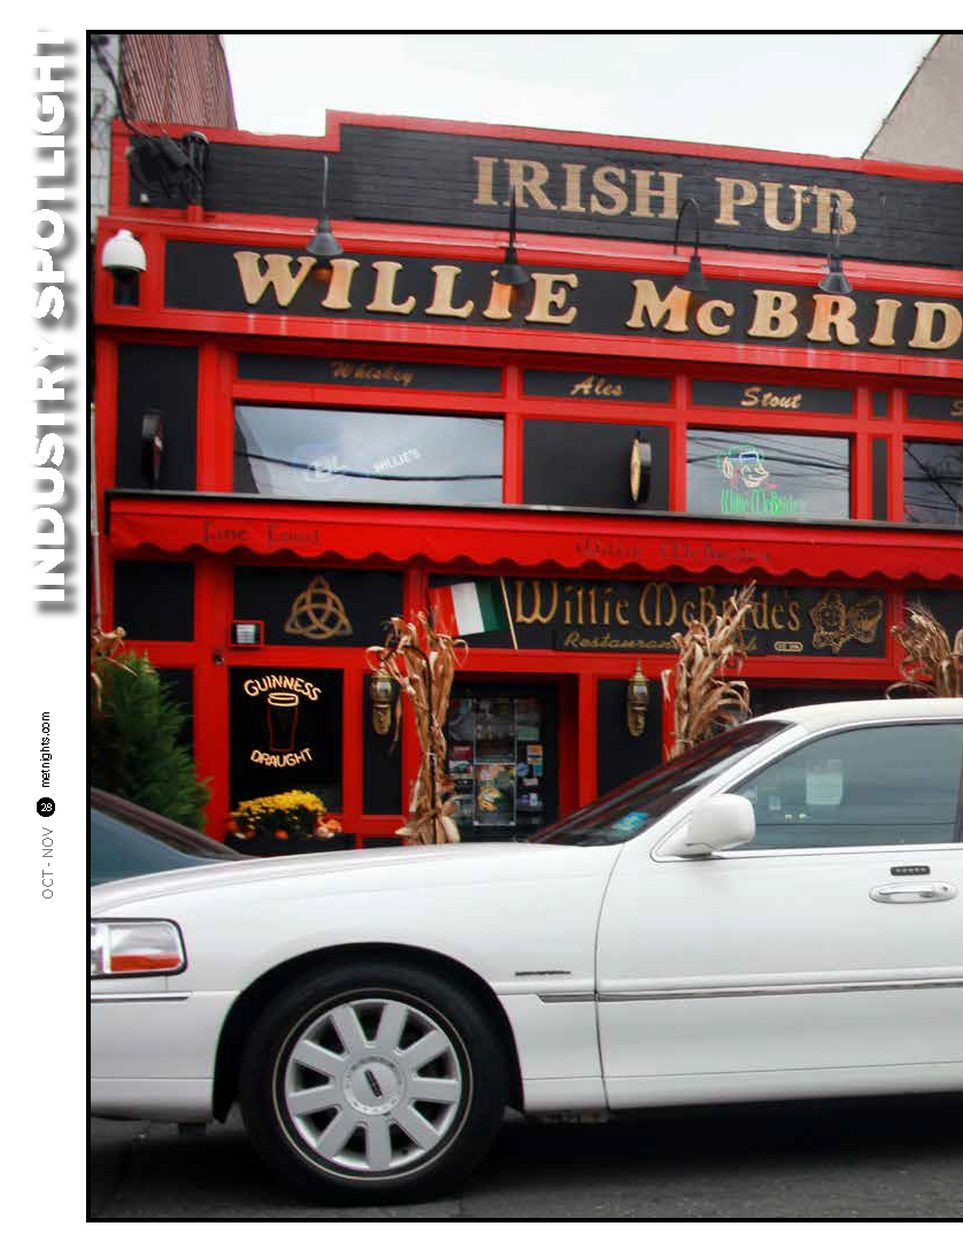 IRISH PUB WILLIE McBRIDE